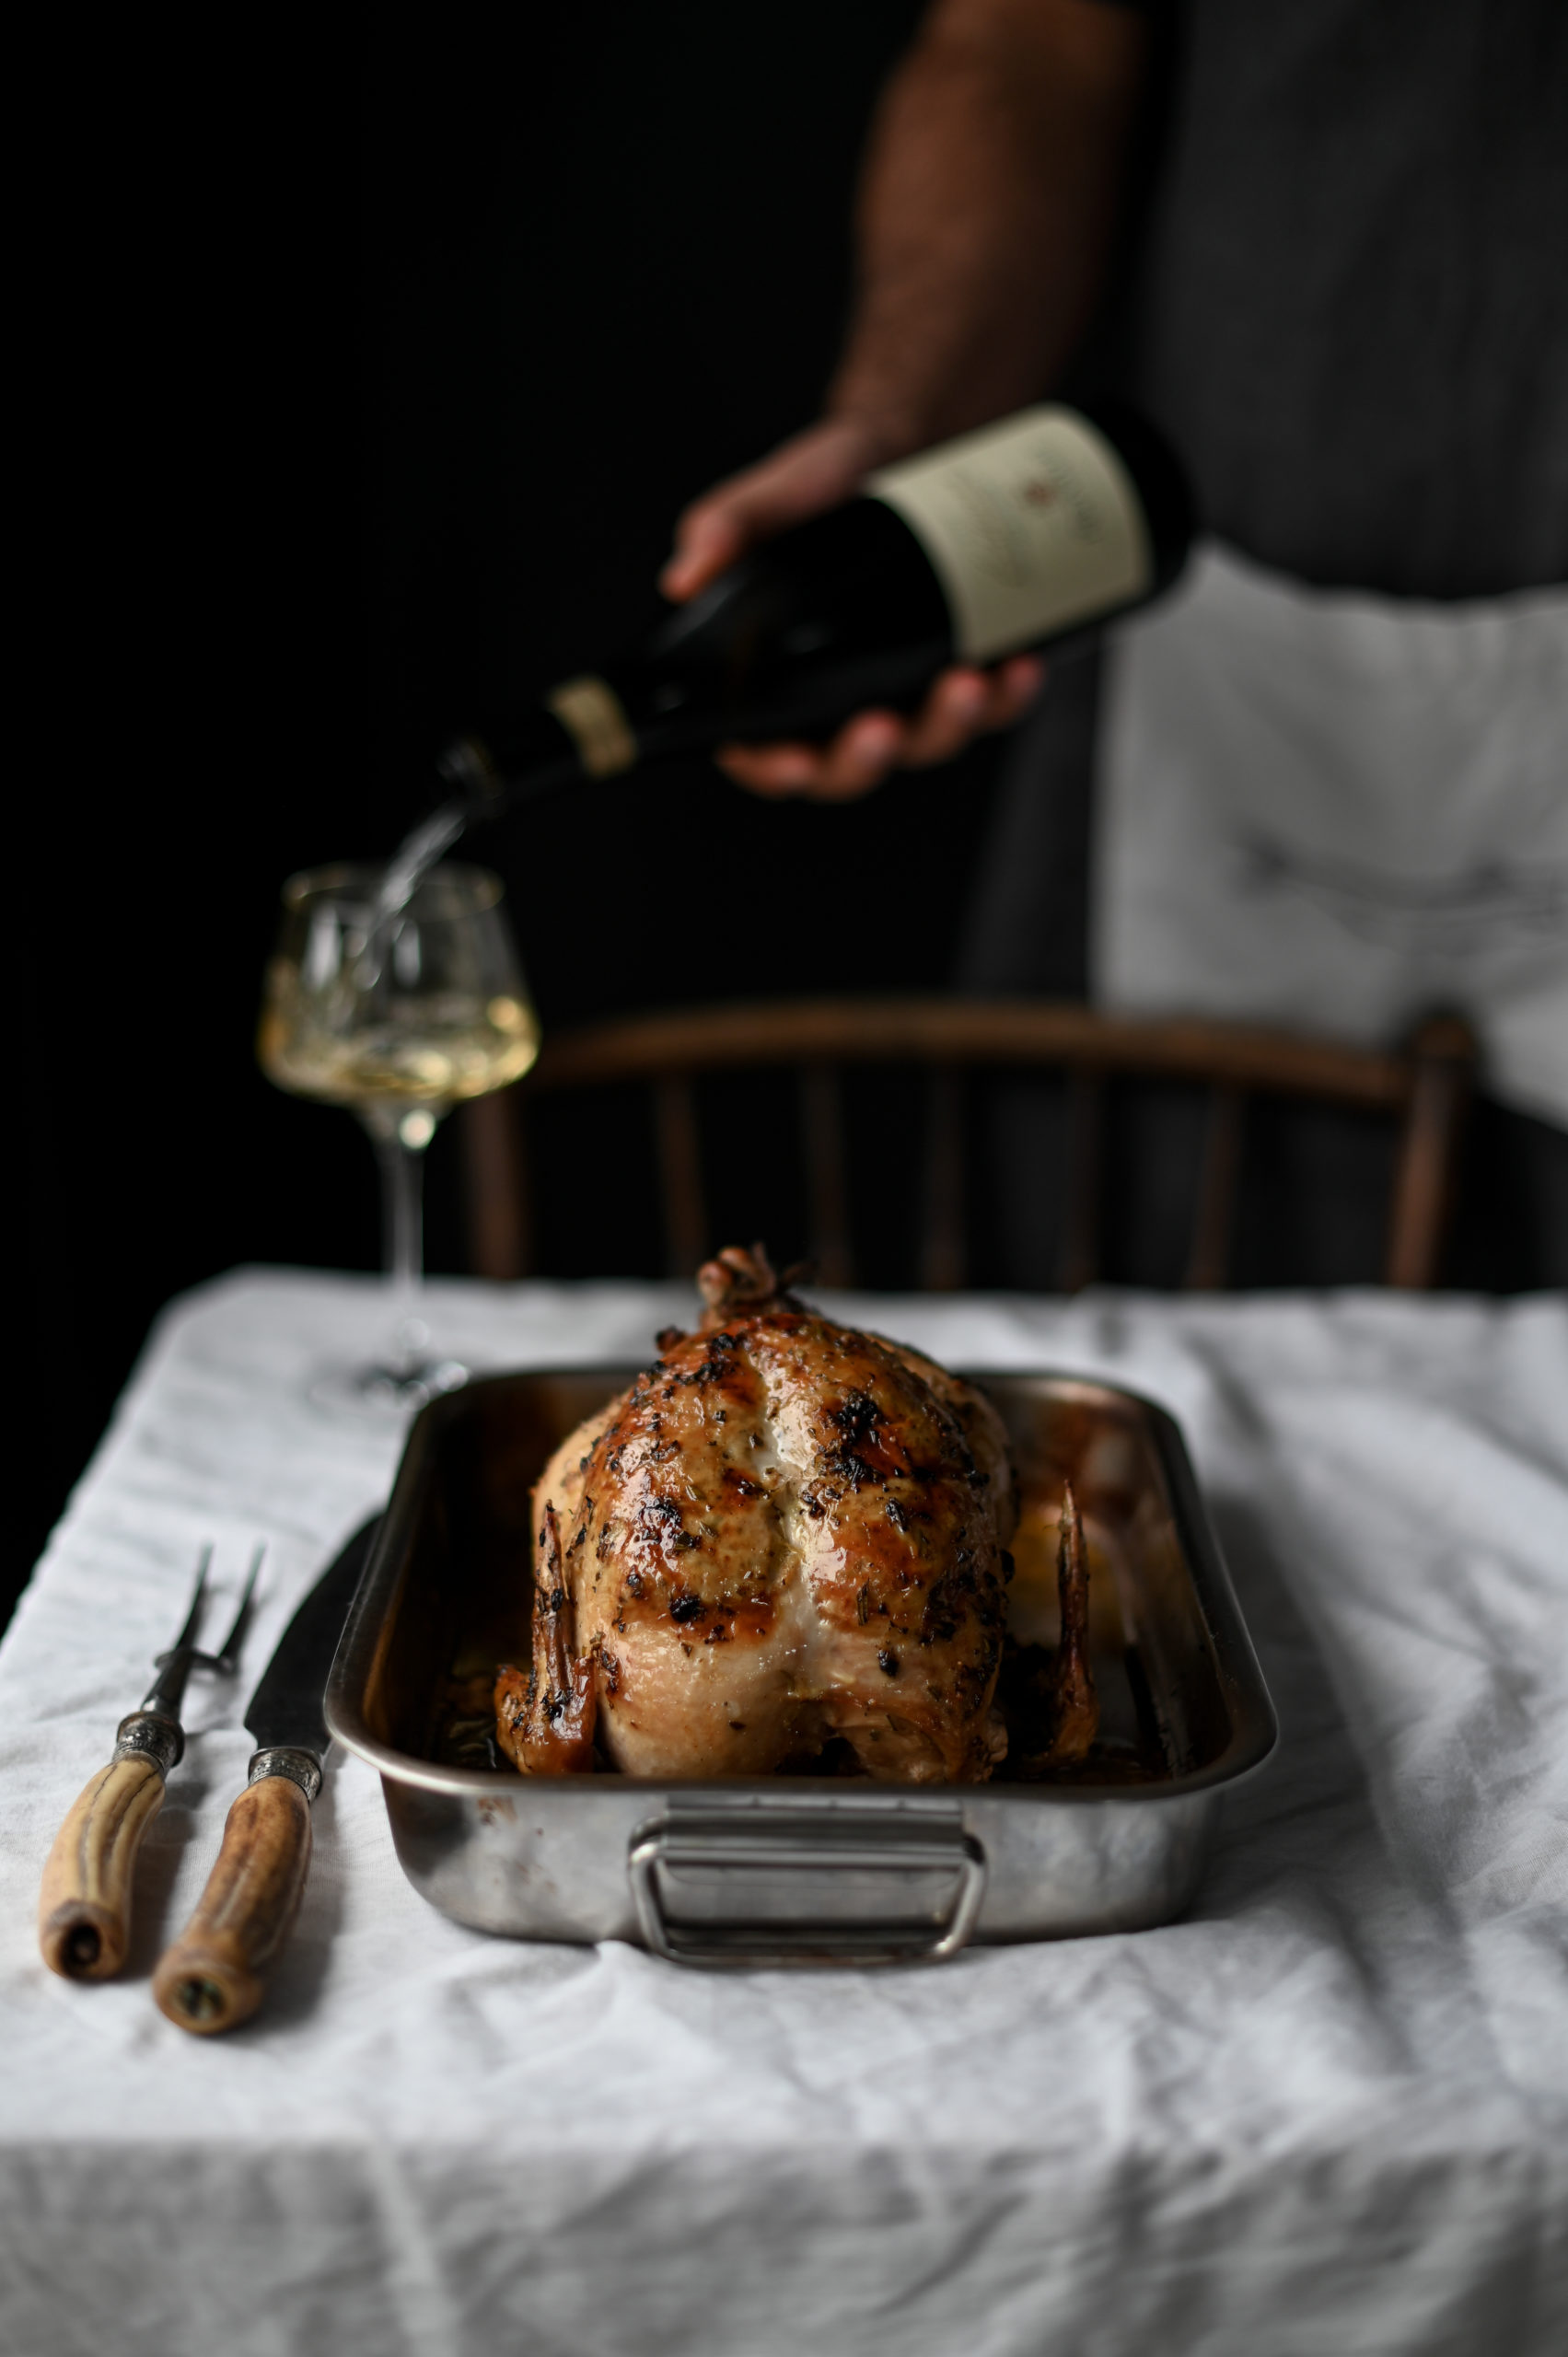 STUFFED CHICKEN WITH PORK AND SAGE